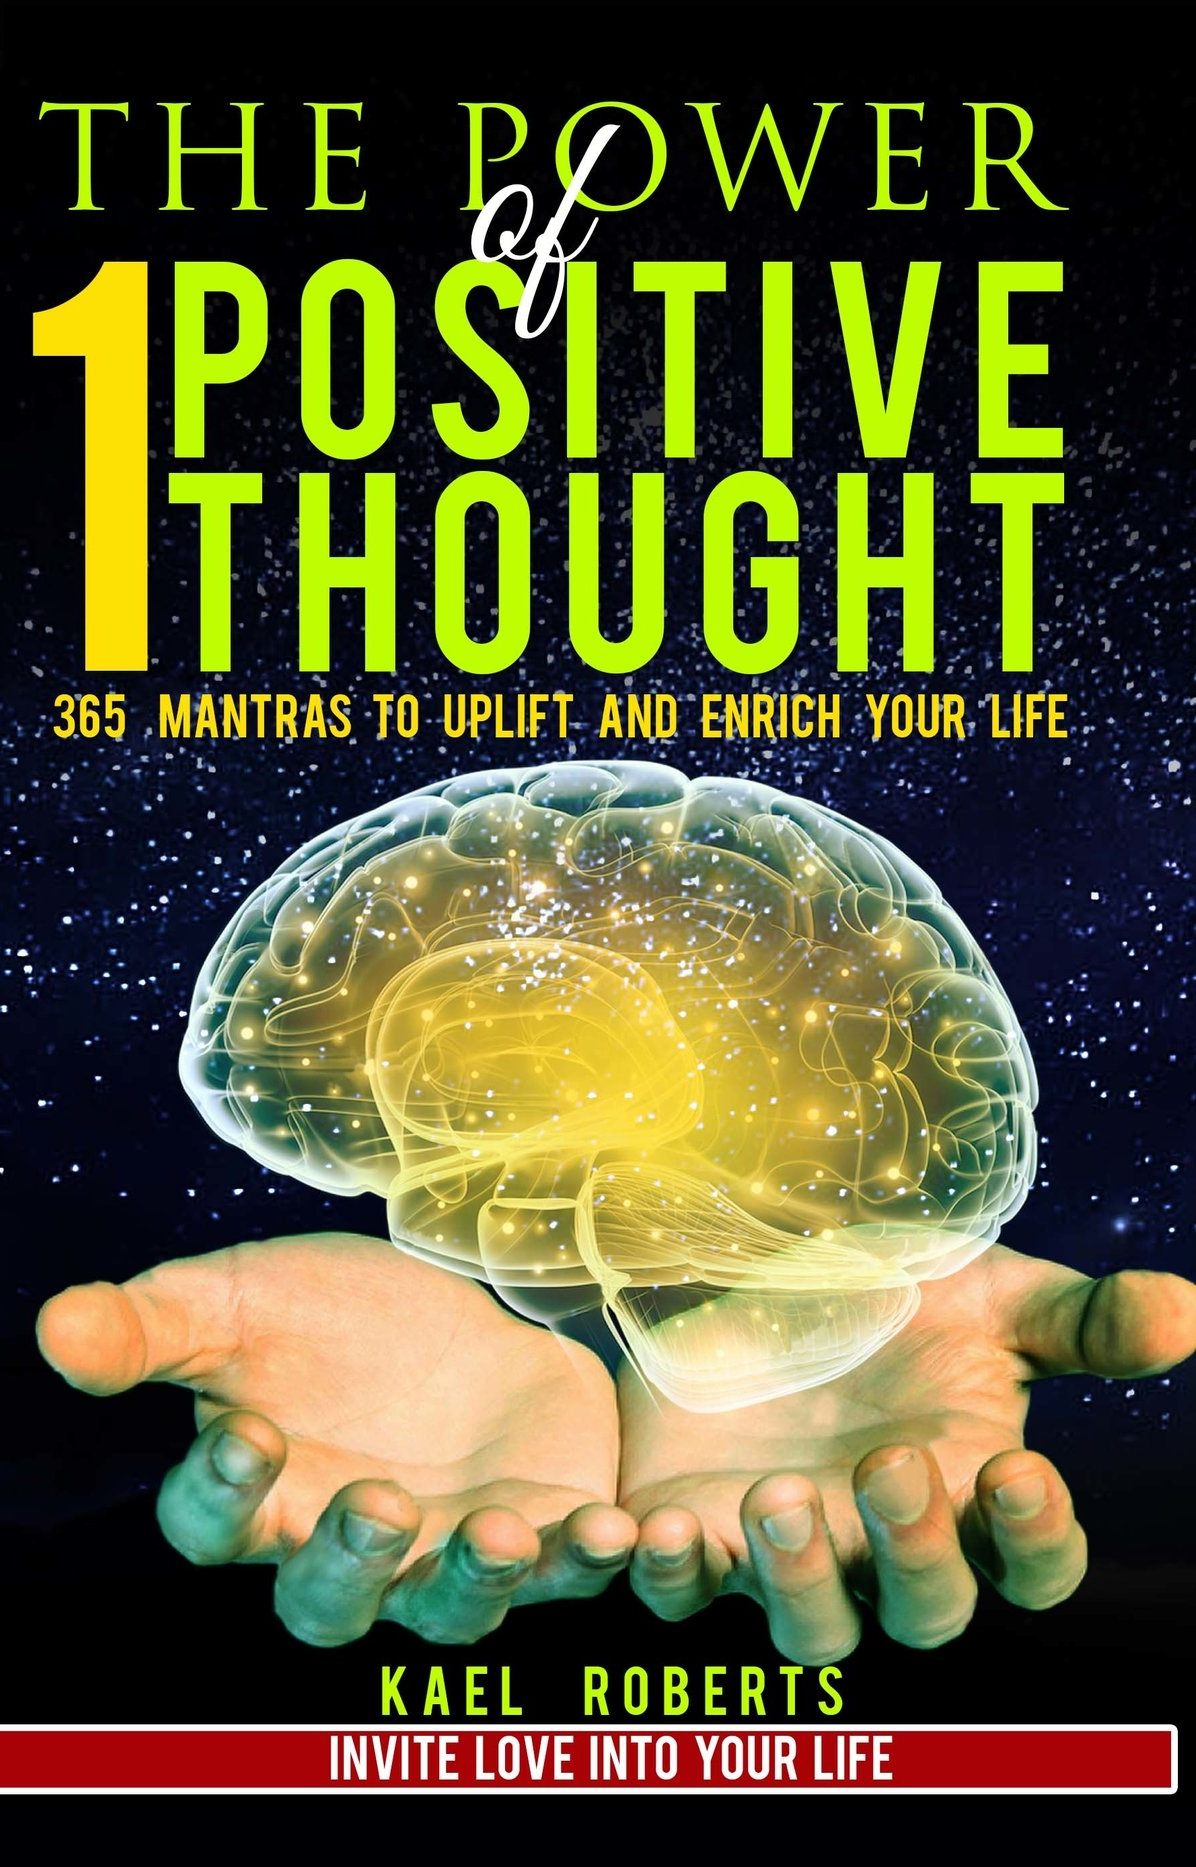 """Get my Book - Download your digital copy of The Power of 1 Positive Thought.This book is a daily mantra book, written to help set the positive intention for your mind and your day. By beginning your day with this book, and the 365 inspired mantras, you will begin to see the mindset shift from a chaotic and stressed thinking pattern, do a more calm, understanding, grateful and """"chill"""" mindset."""